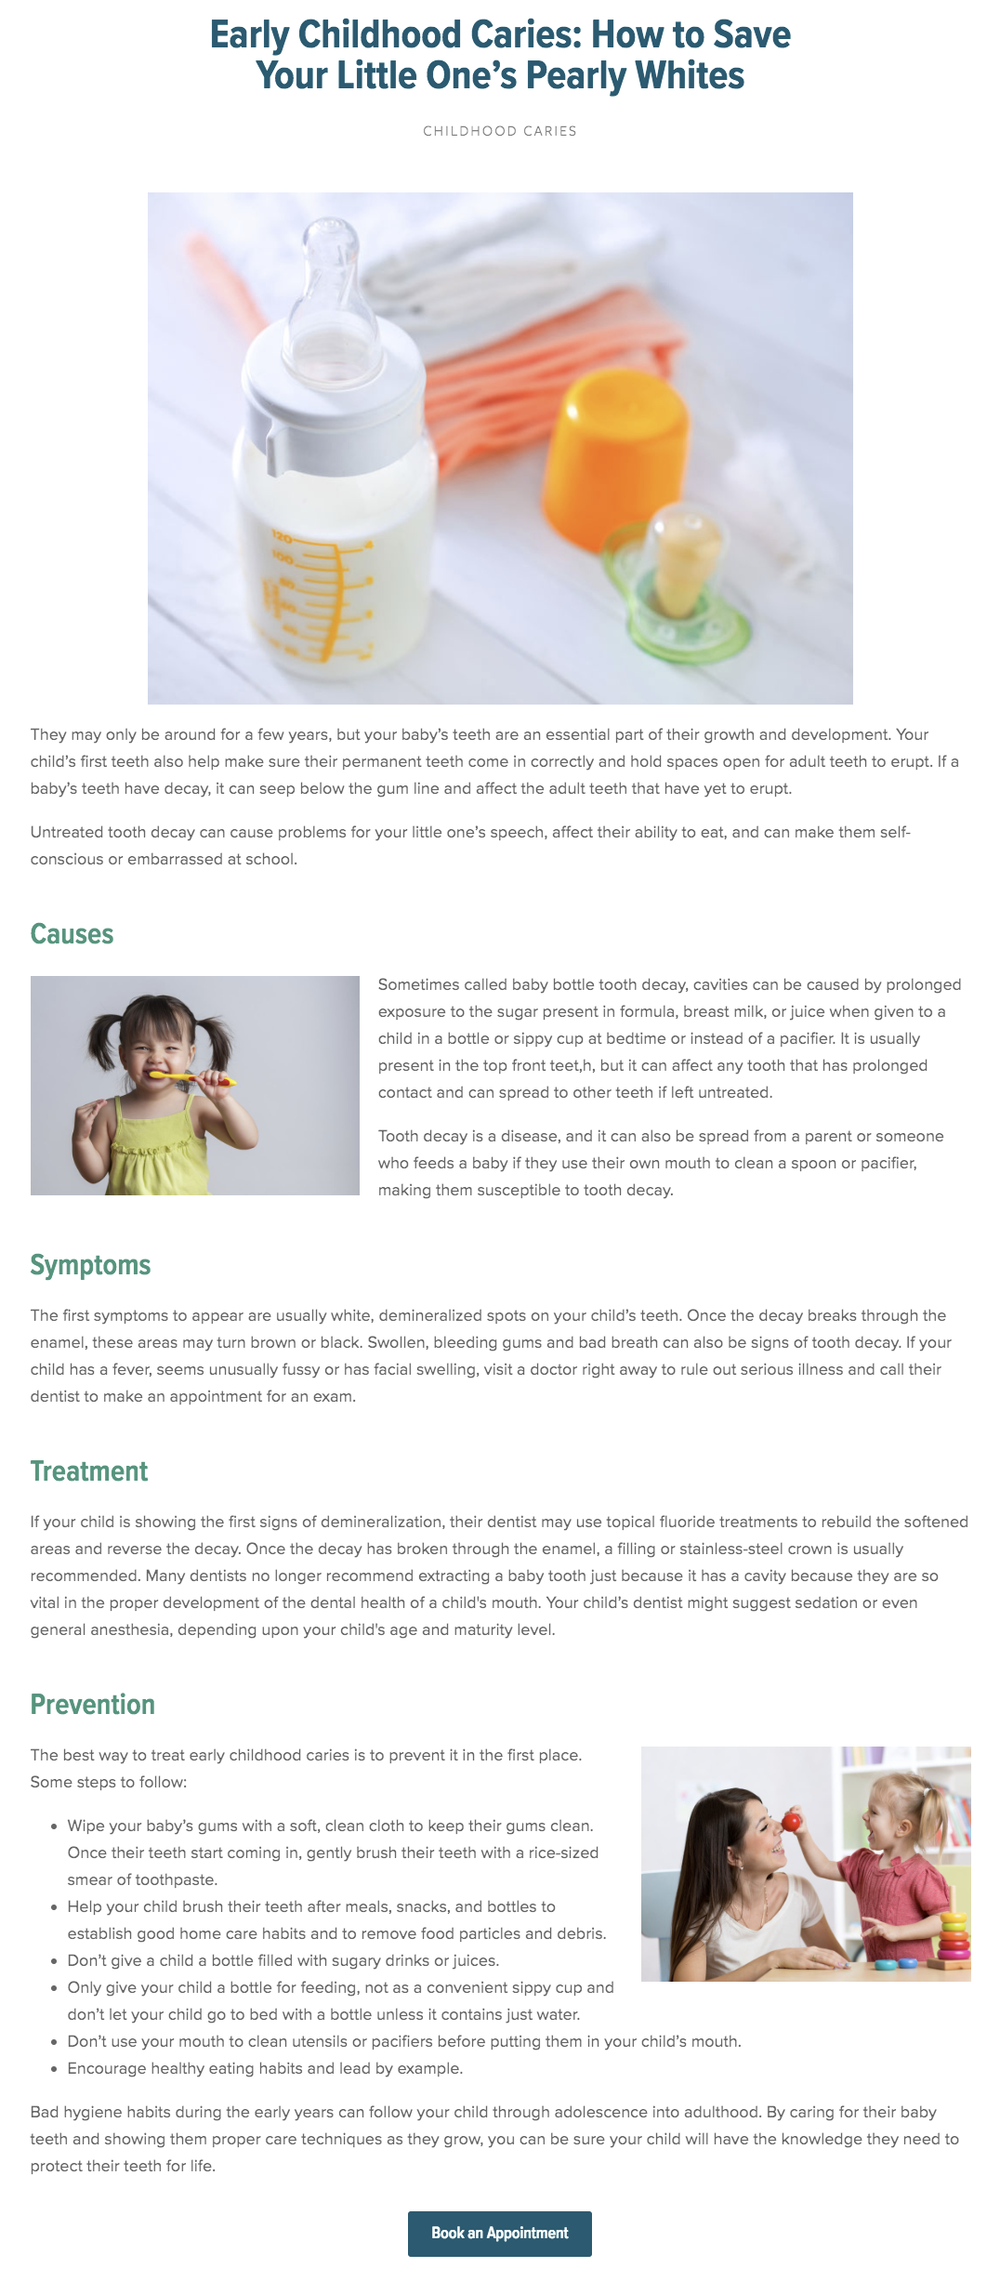 screencapture-legwork-green-squarespace-ped-blog-early-childhood-caries-how-to-save-your-little-ones-pearly-whites-2018-12-14-10_32_41.png